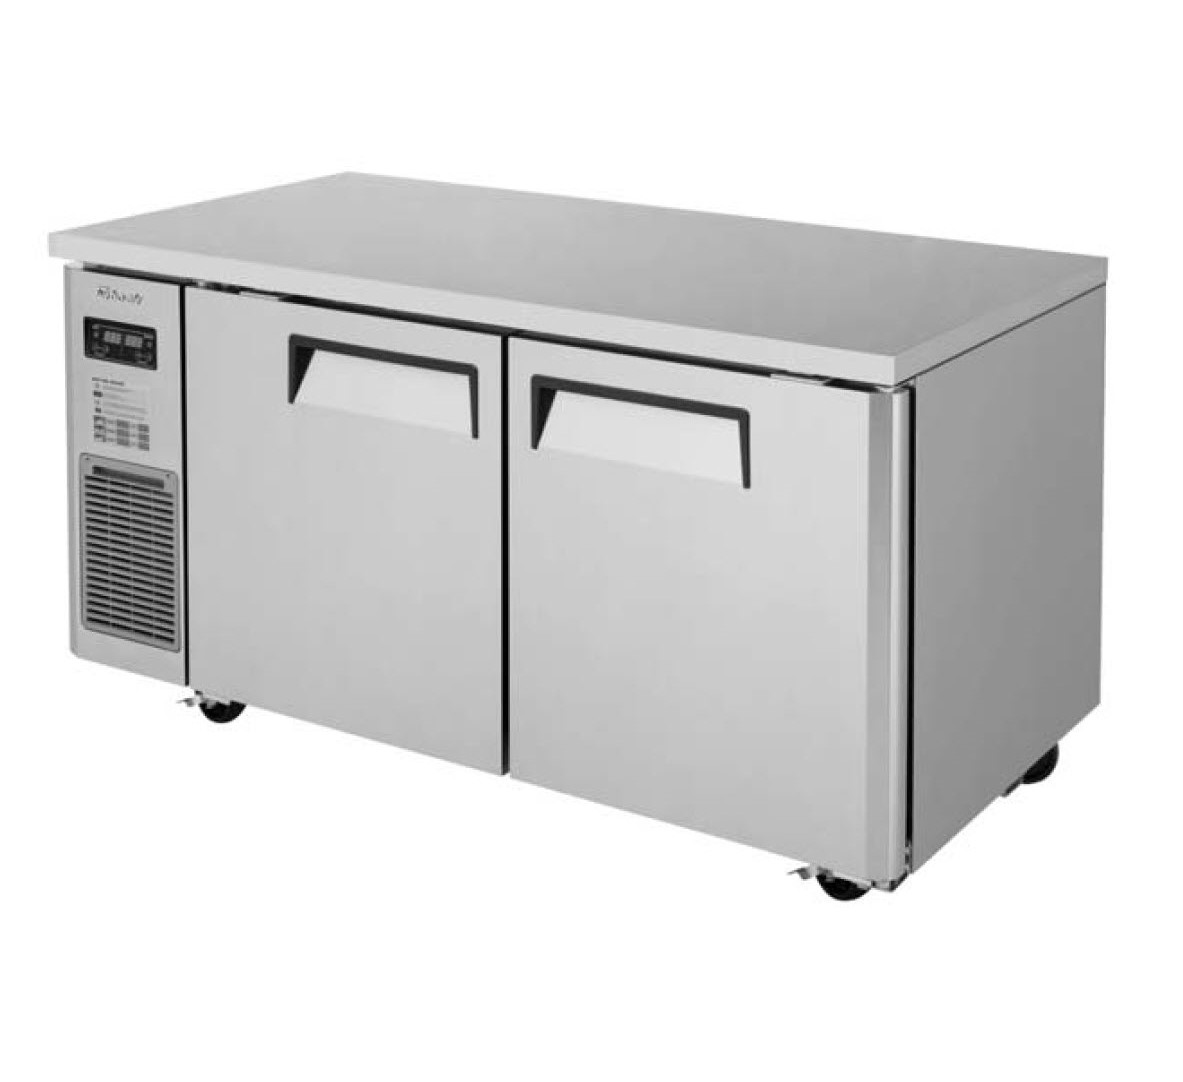 Turbo Air JURF-60-N refrigerator freezer, undercounter, reach-in